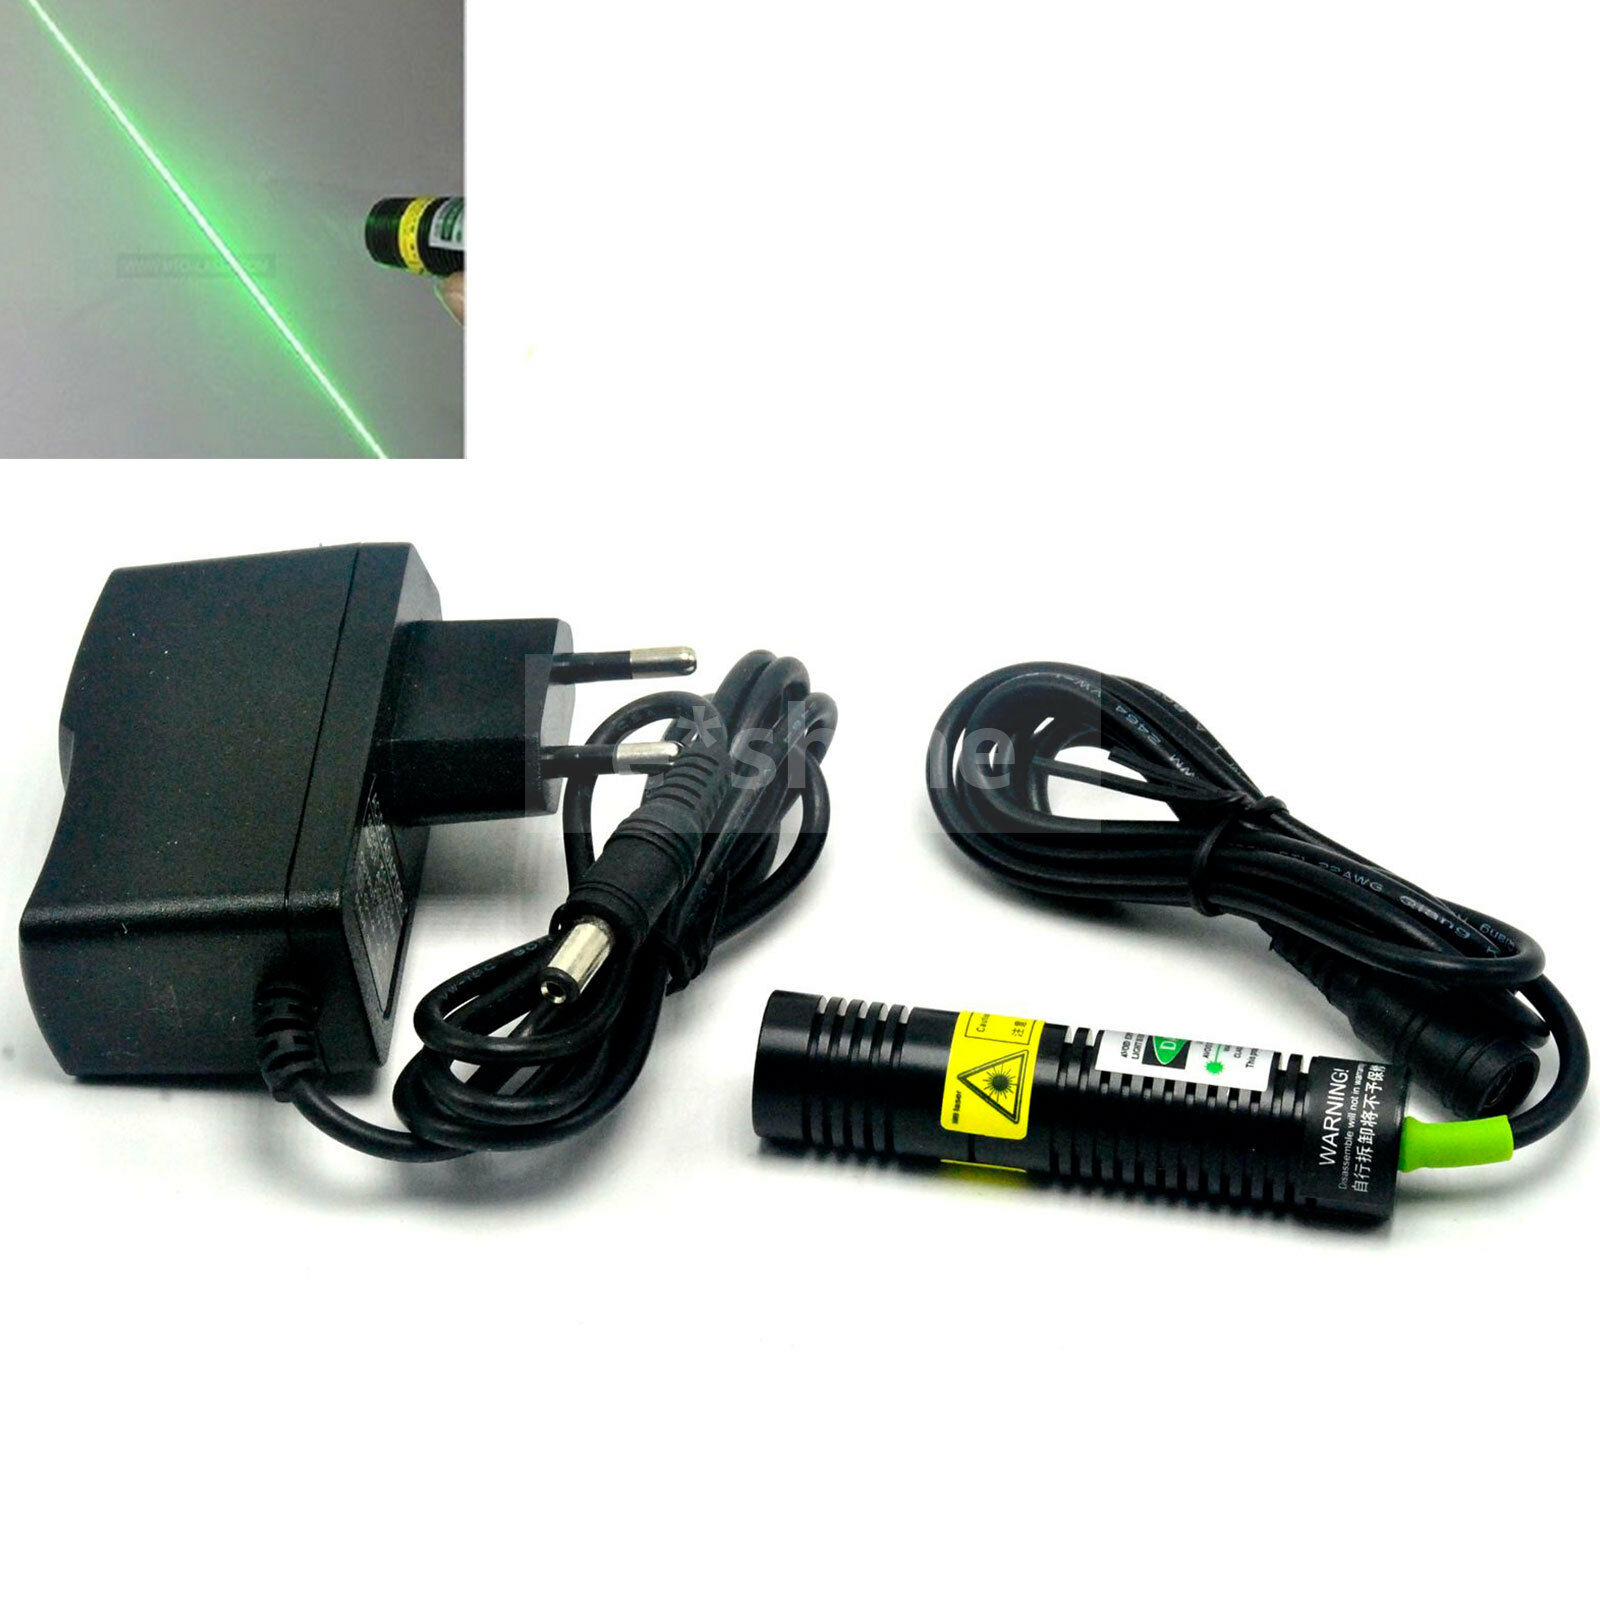 532nm 10mW Green Laser Line Module Long Time Working With 5V Power Adapter US/EU/AU/UK